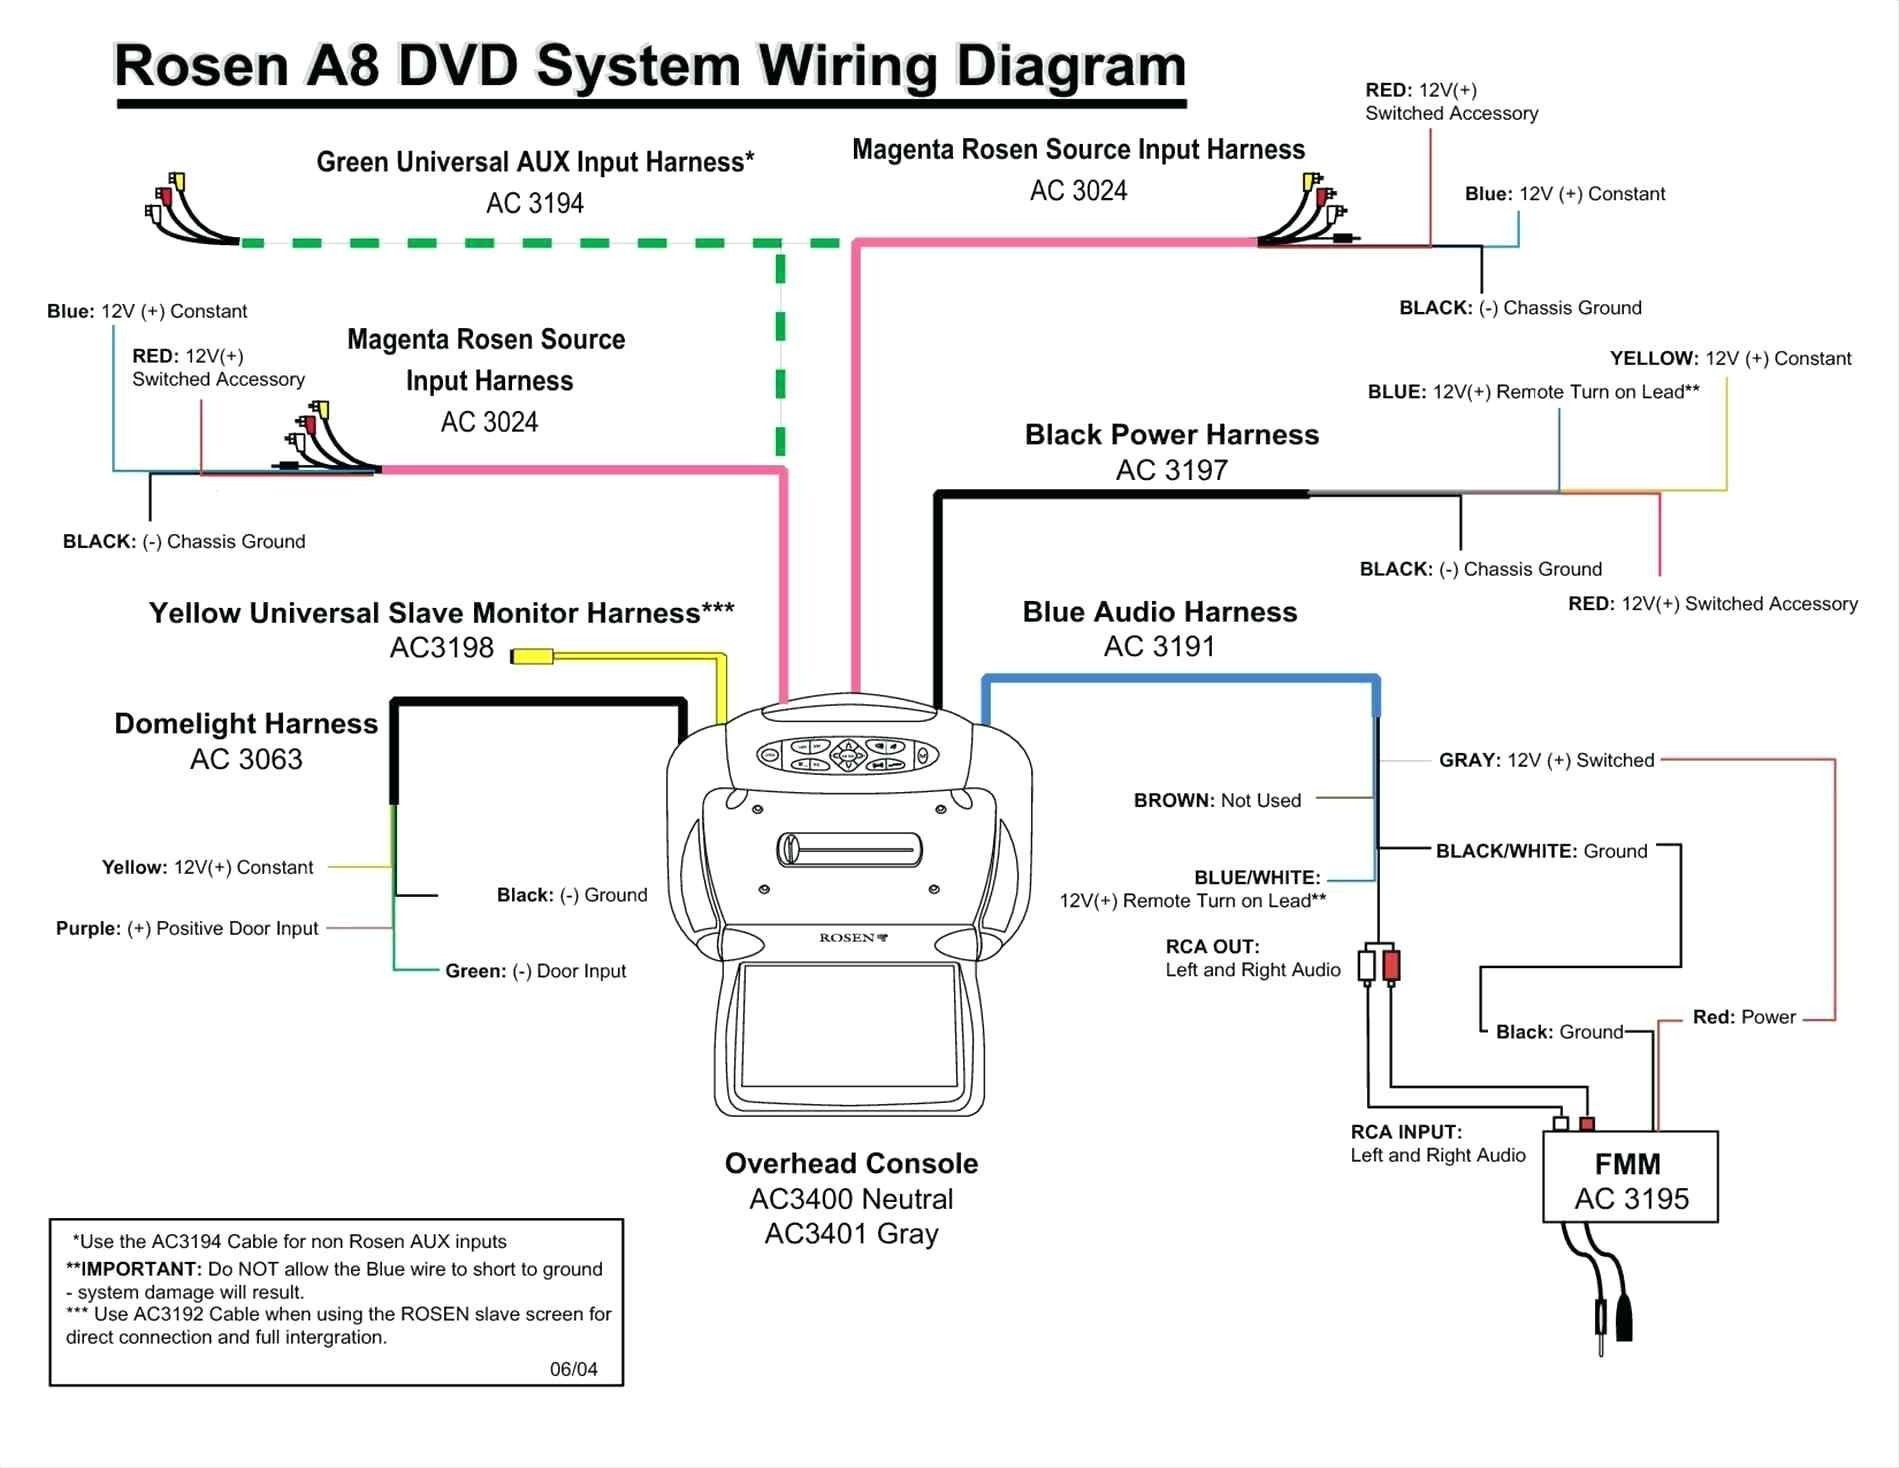 Pool Wiring Diagrams -1966 Chevy Truck Wiring Diagram | Begeboy Wiring  Diagram SourceBegeboy Wiring Diagram Source